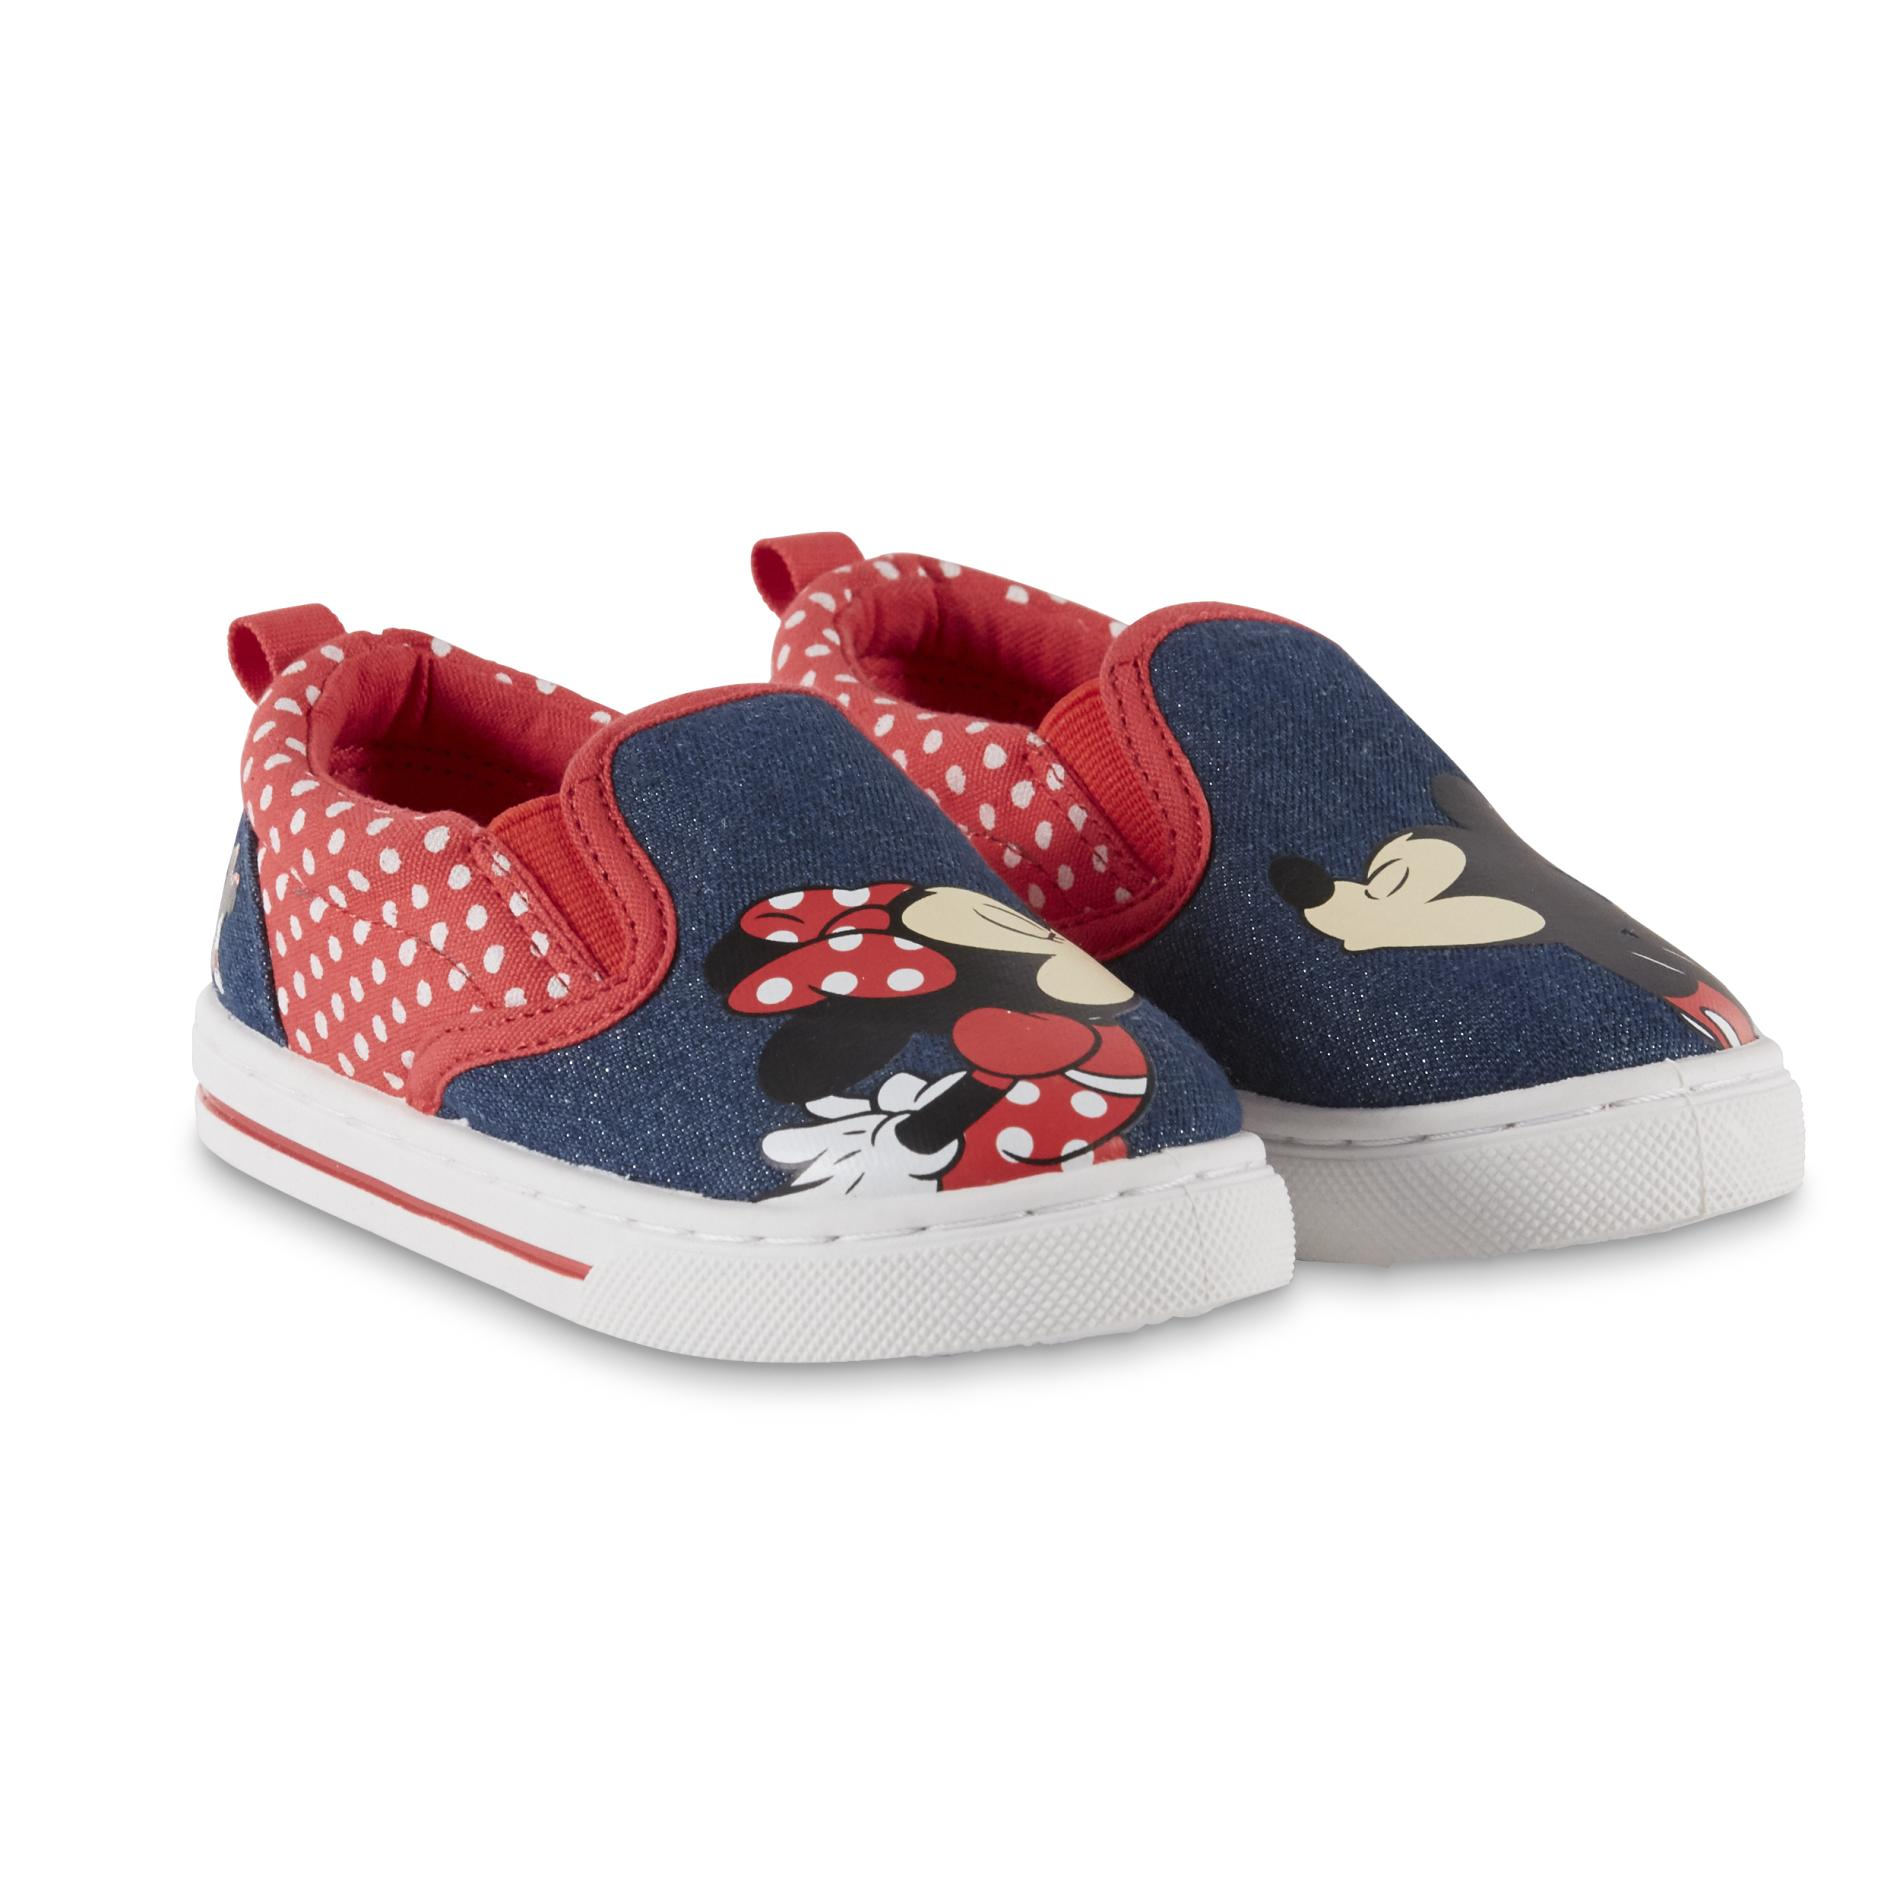 Keen Toddler Shoes Size 9